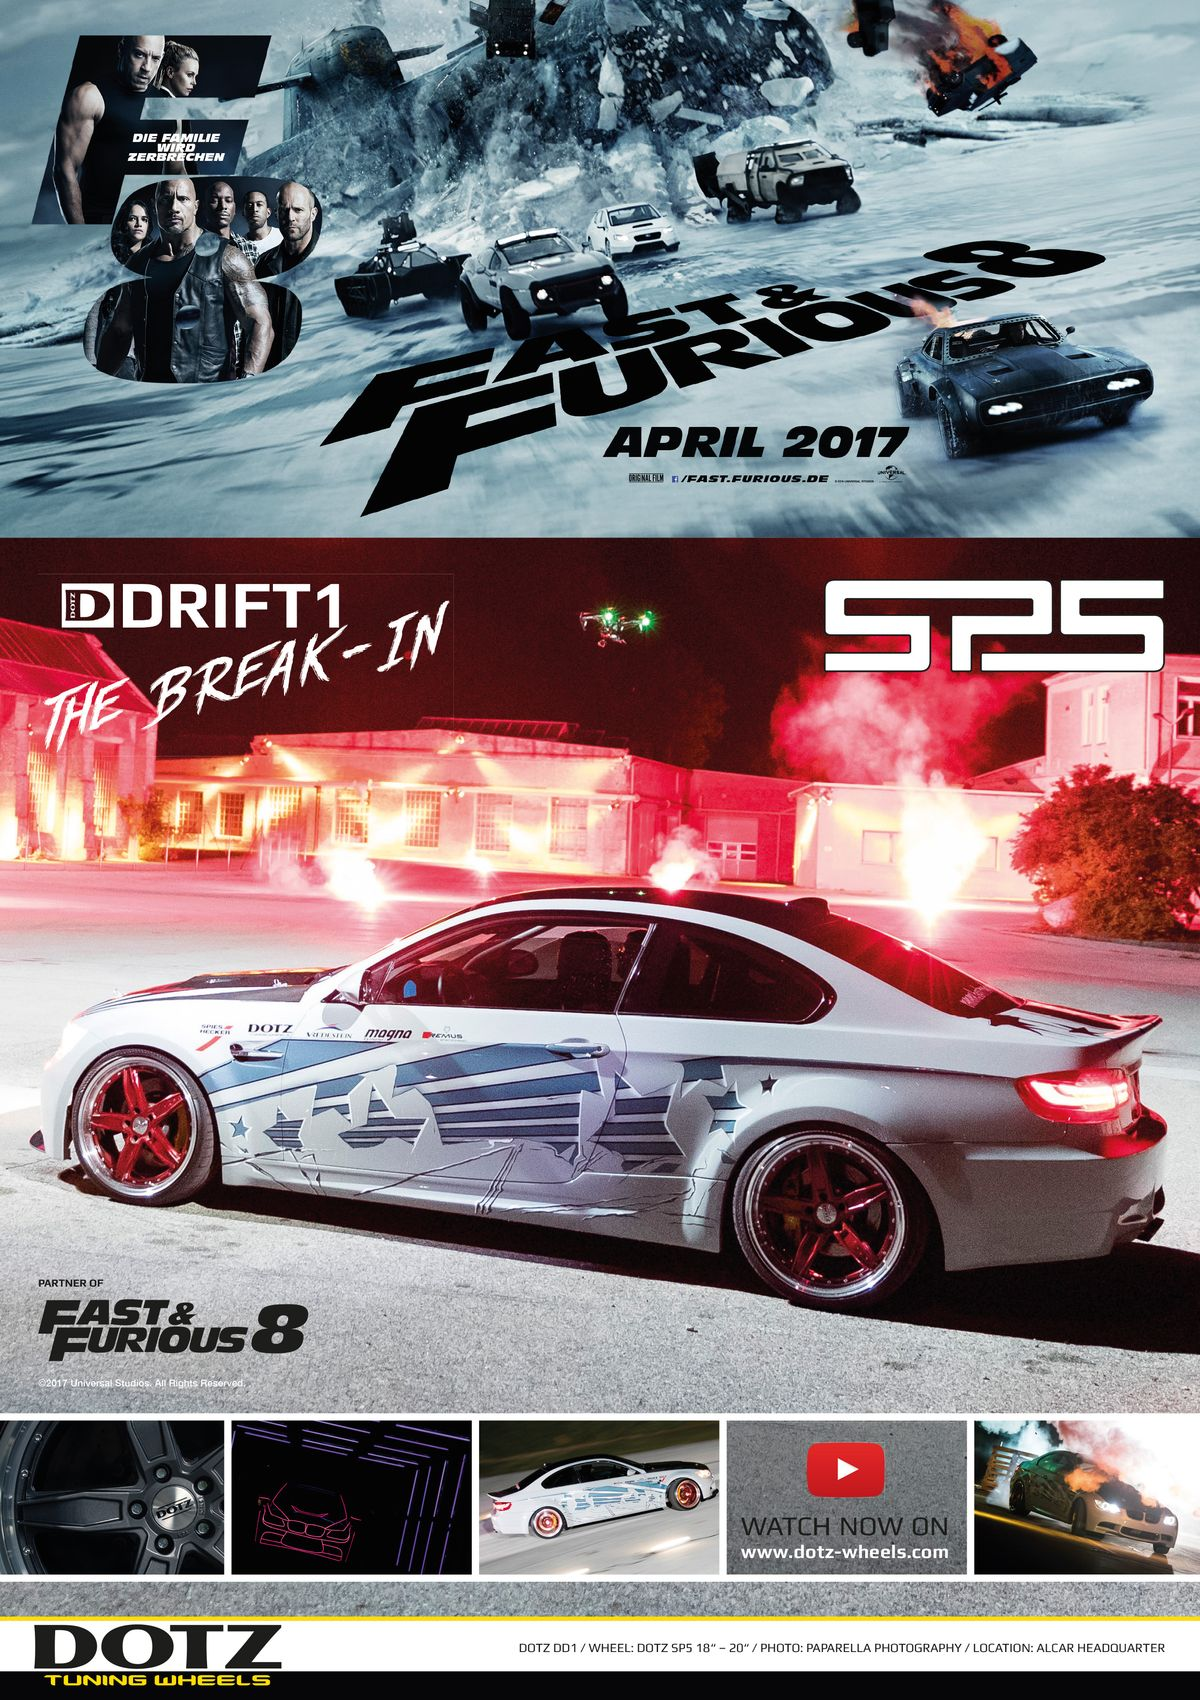 Dotz: Fast and Furious 8